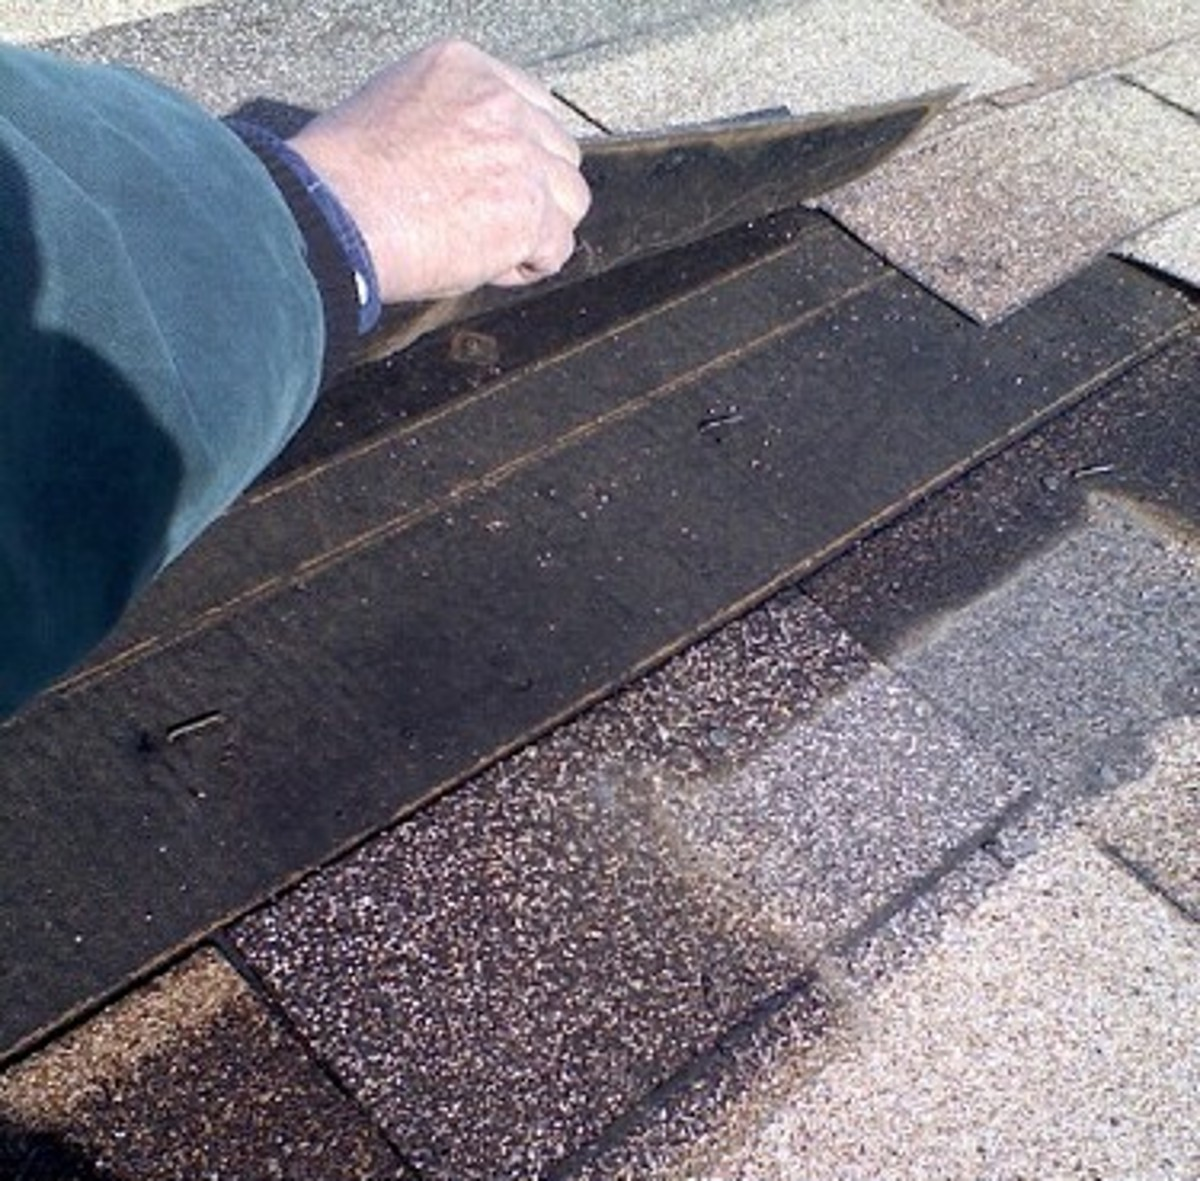 The upper shingle is pried high, showing the roofing paper under it.  The broken shingle has been completely removed.  Note the staples that need removed.